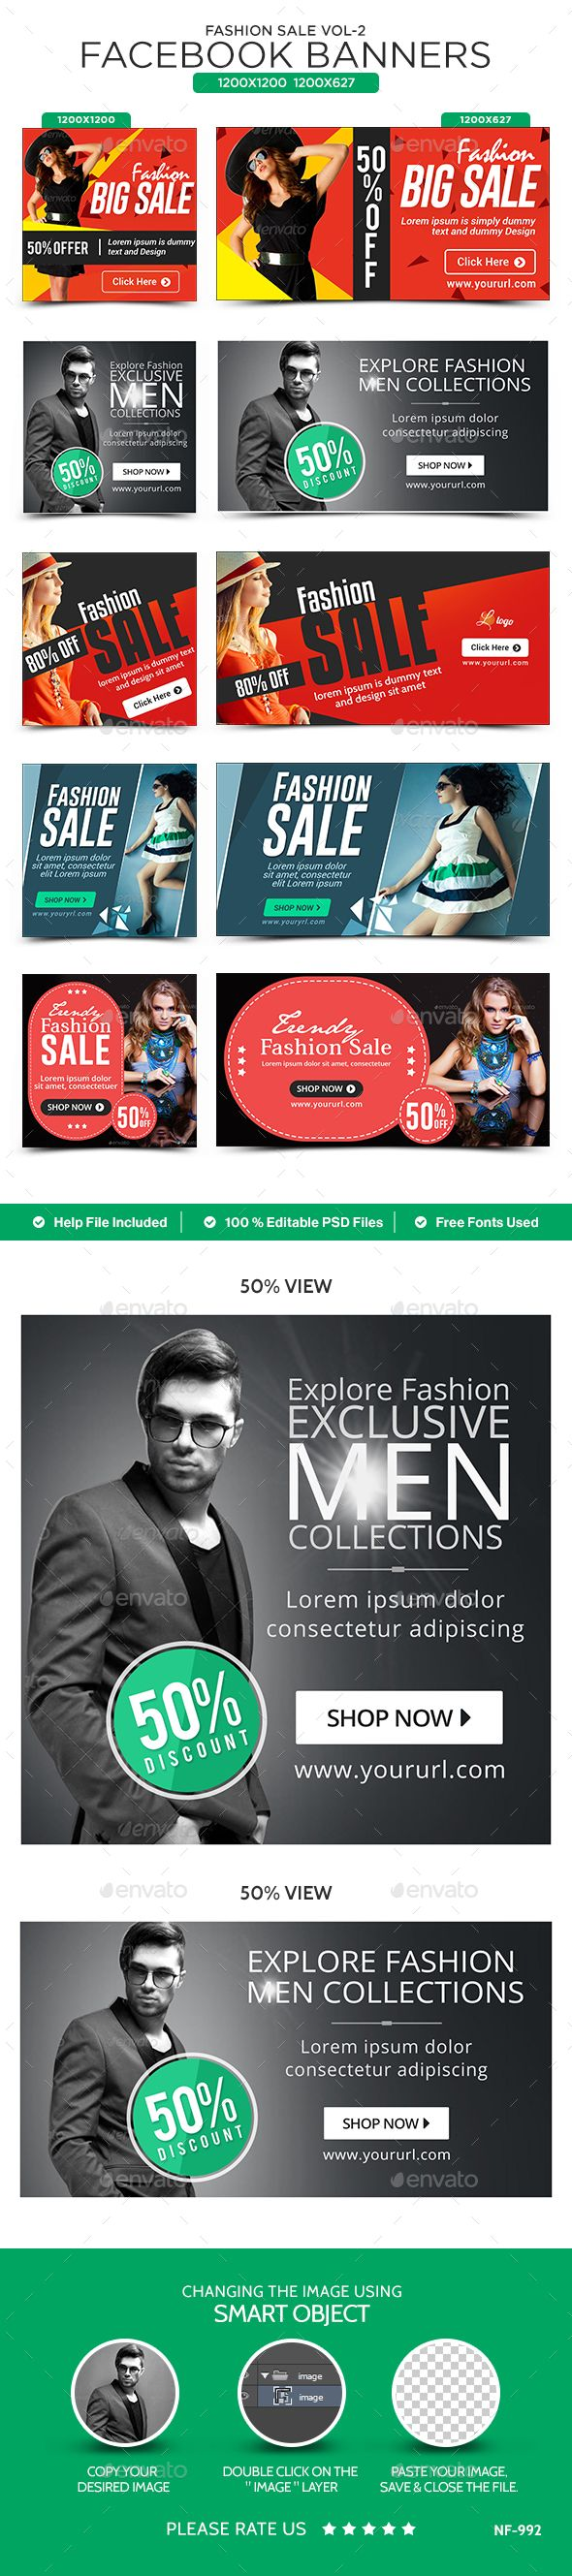 Fashion Sale Facebook Banners  5 Designs  2 Sizes Each — Photoshop PSD #animated banner #fashion • Available here → https://graphicriver.net/item/fashion-sale-facebook-banners-5-designs-2-sizes-each/14473332?ref=pxcr